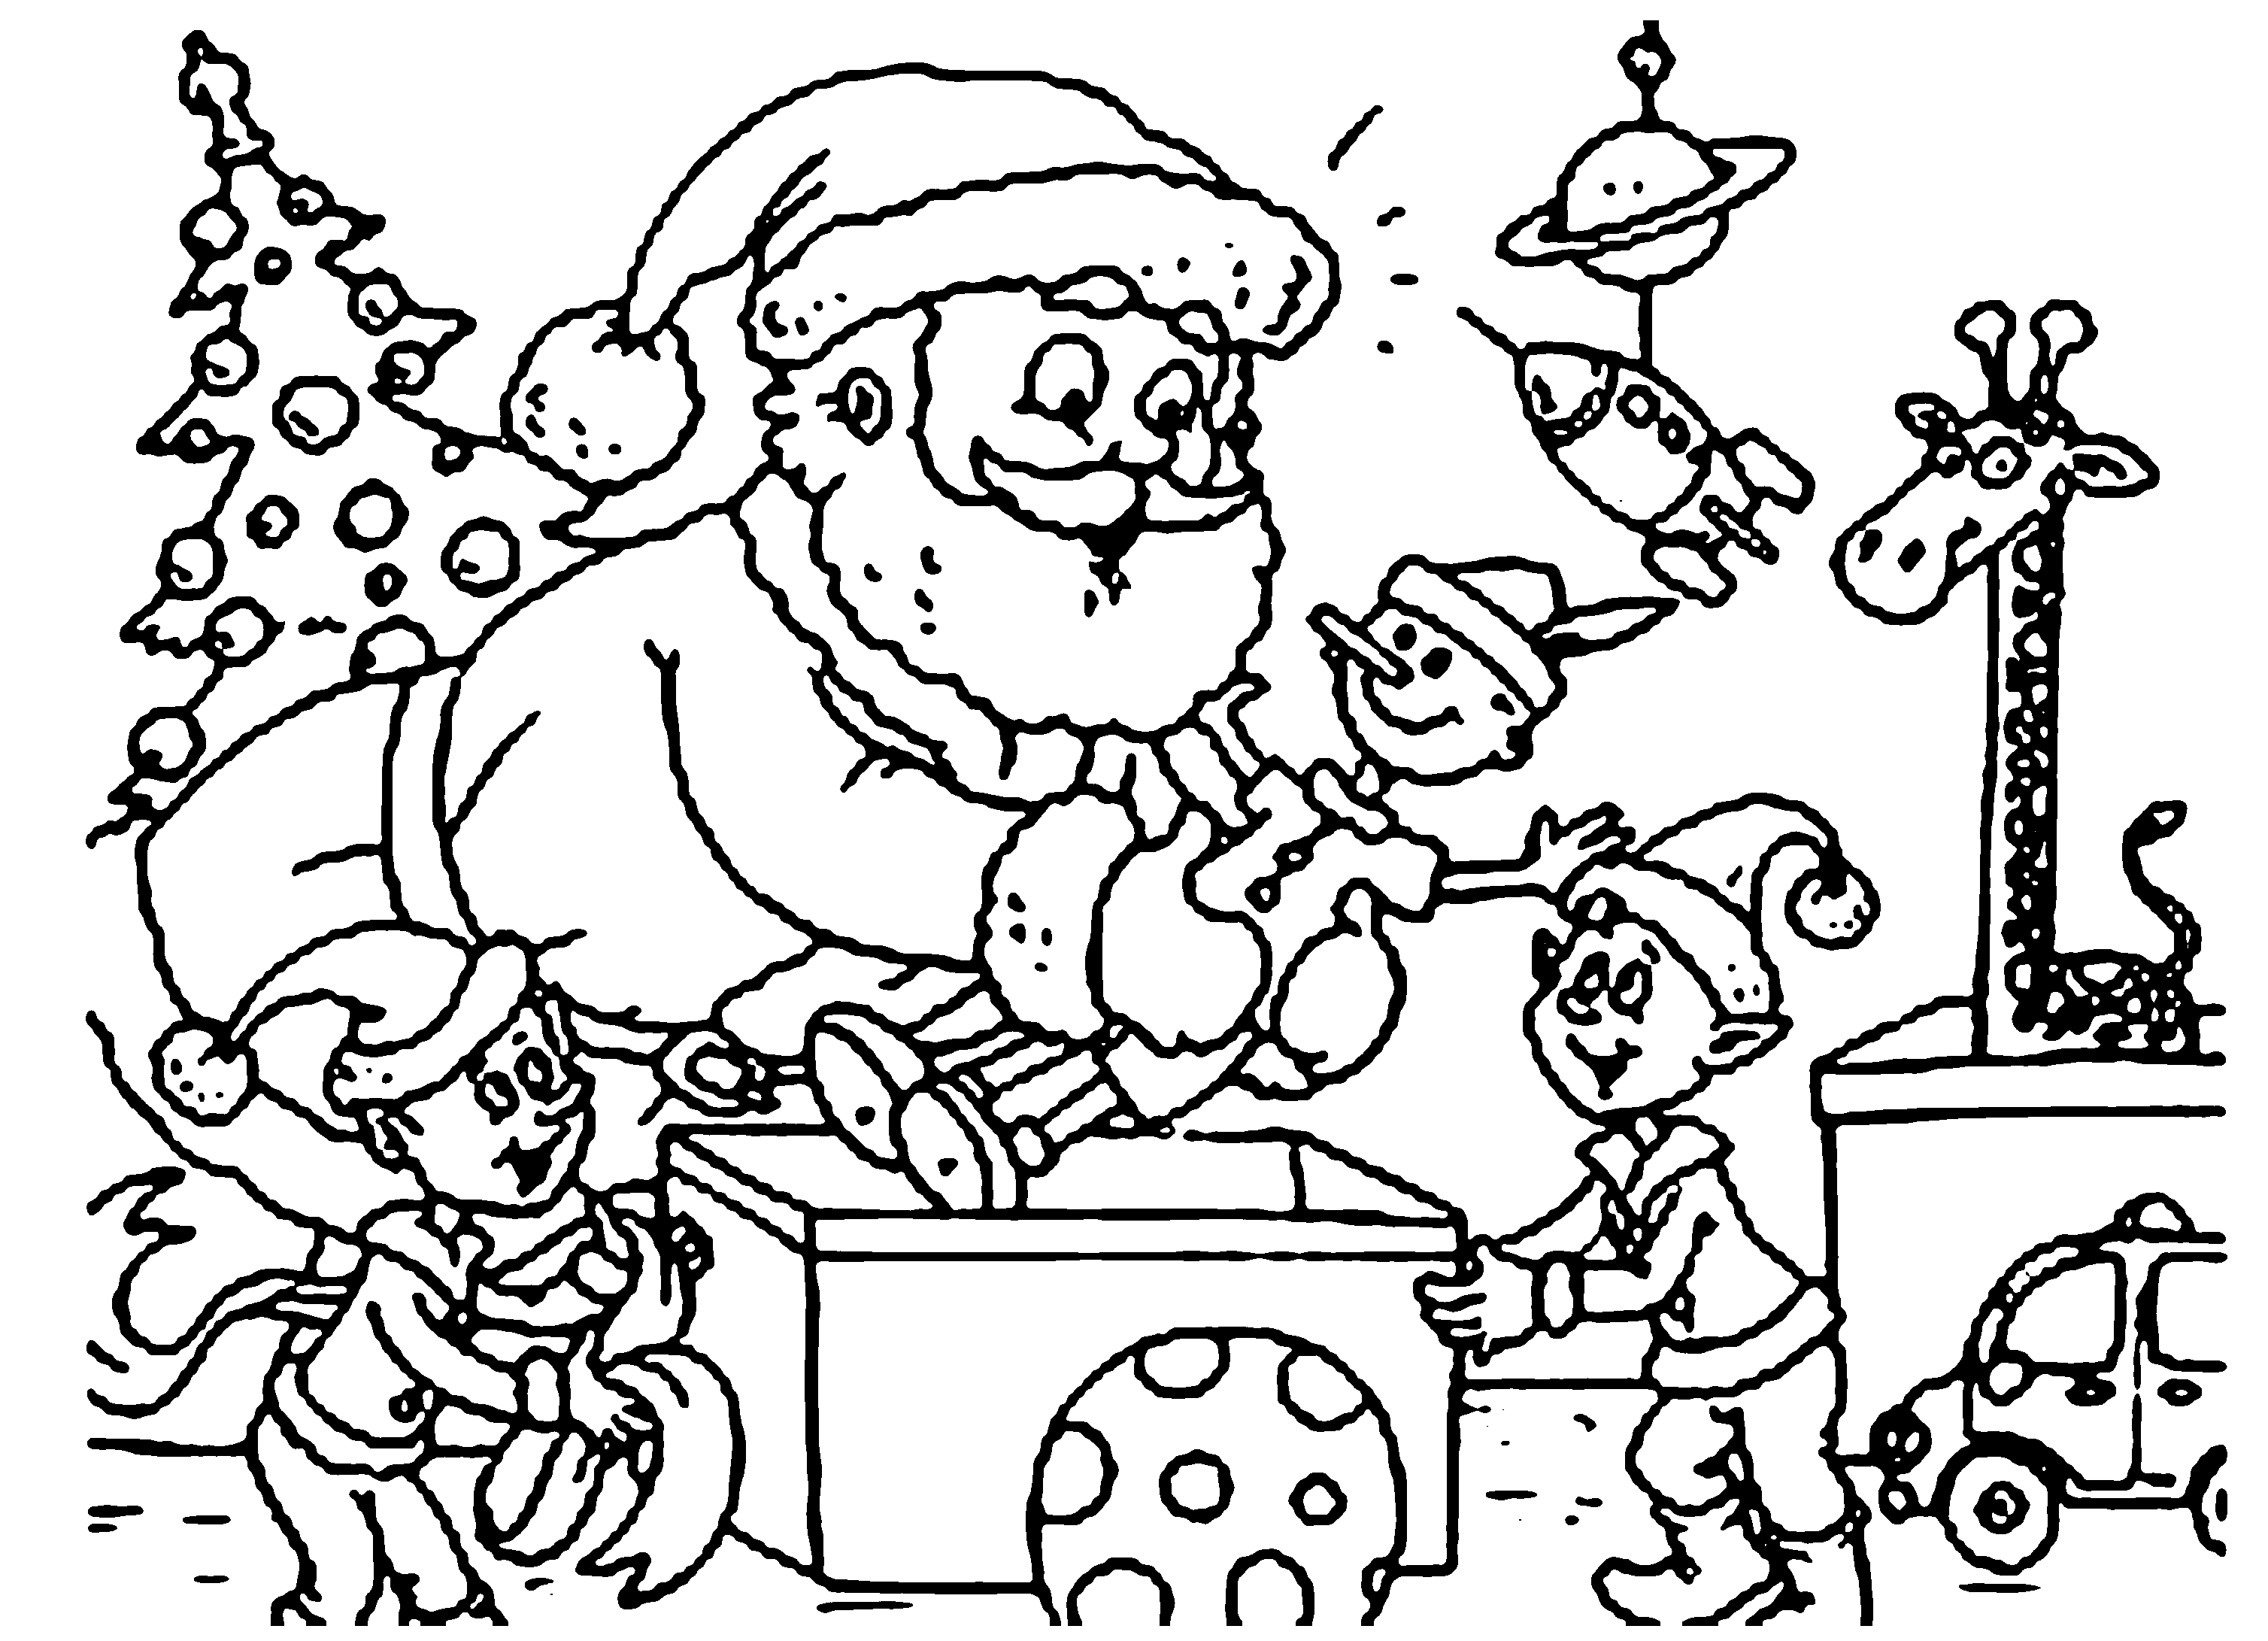 Santa Claus Coloring Page Free With Awesome Cartoon Pages Design Printable